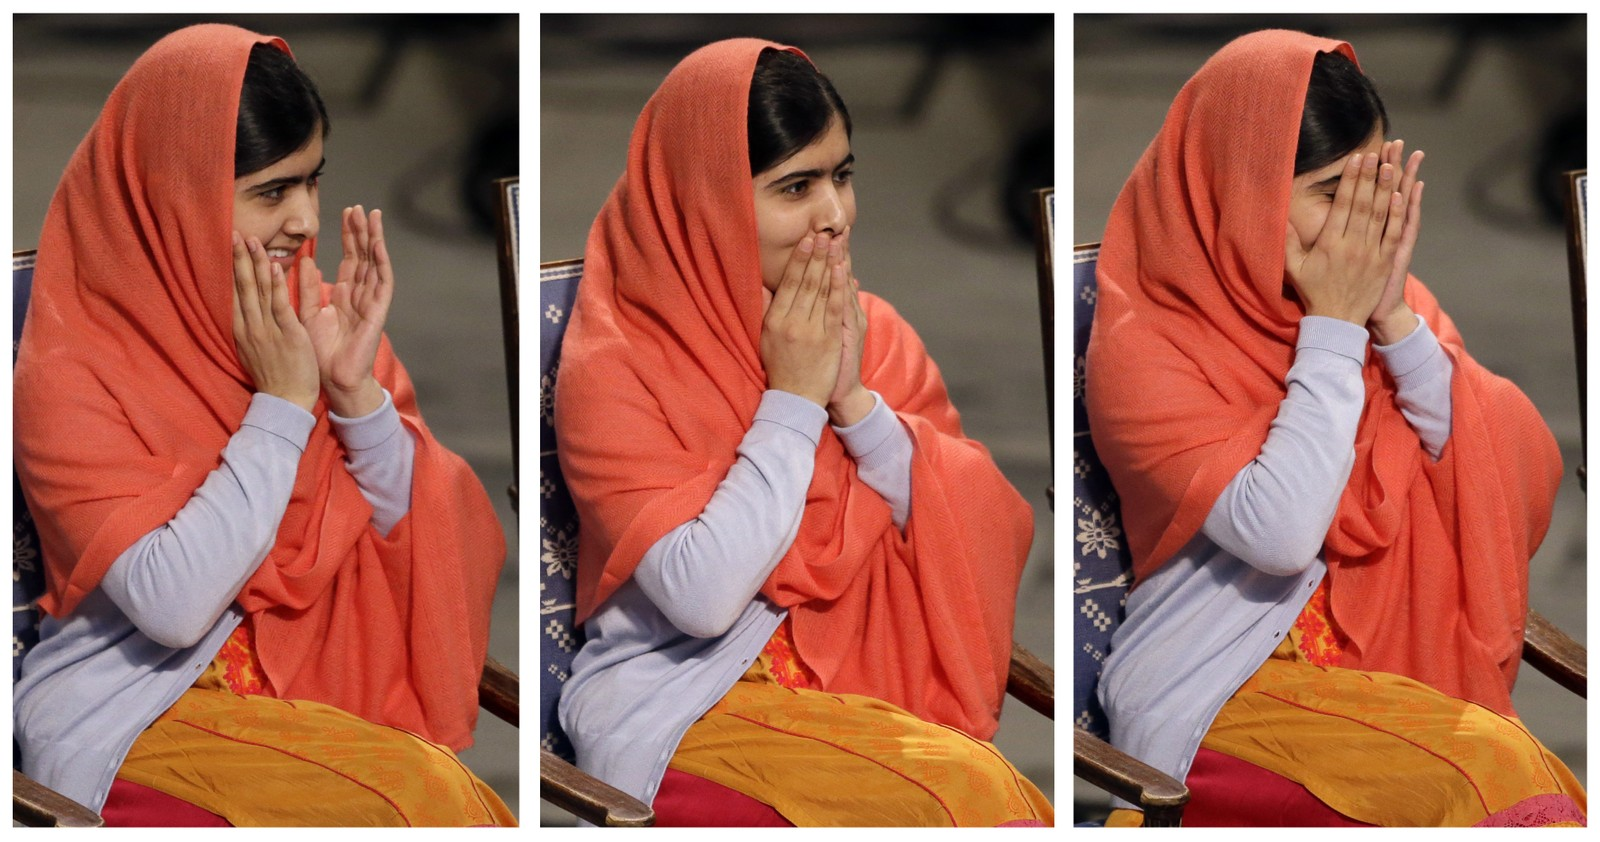 MANGE FØLELSER: In this combo of three images Nobel Peace Prize winner Malala Yousafzai from Pakistan, puts her hands to her face as she sits during the Nobel Peace Prize award ceremony in Oslo, Norway, Wednesday, Dec. 10, 2014. The Nobel Peace Prize is being shared between Malala Yousafzai, the 17-year-old Taliban attack survivor, and the youngest Nobel Prize winner ever, and Indian children's rights activist Kailash Satyarthi in a ceremony in Oslo on Wednesday. (AP Photo/Matt Dunham)